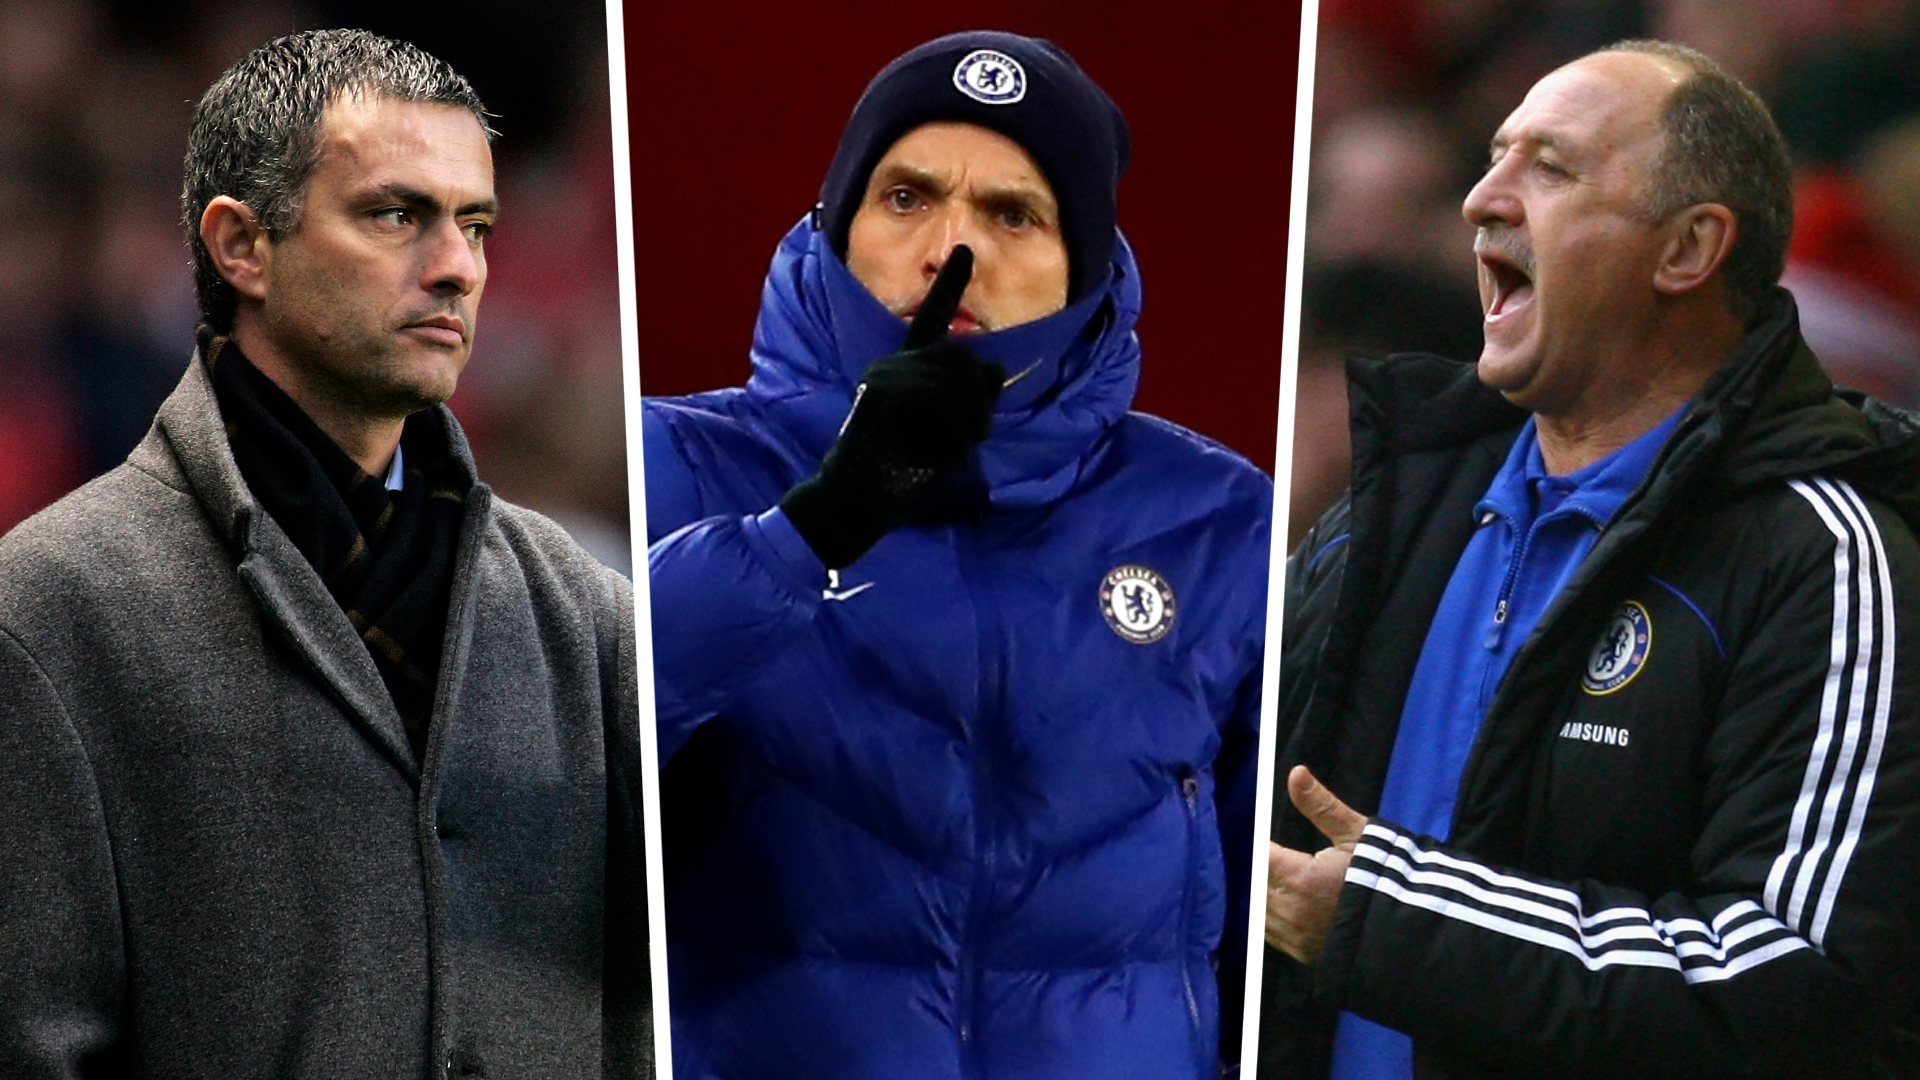 Tuchel matches Chelsea records of Scolari & Mourinho in 12-game unbeaten start